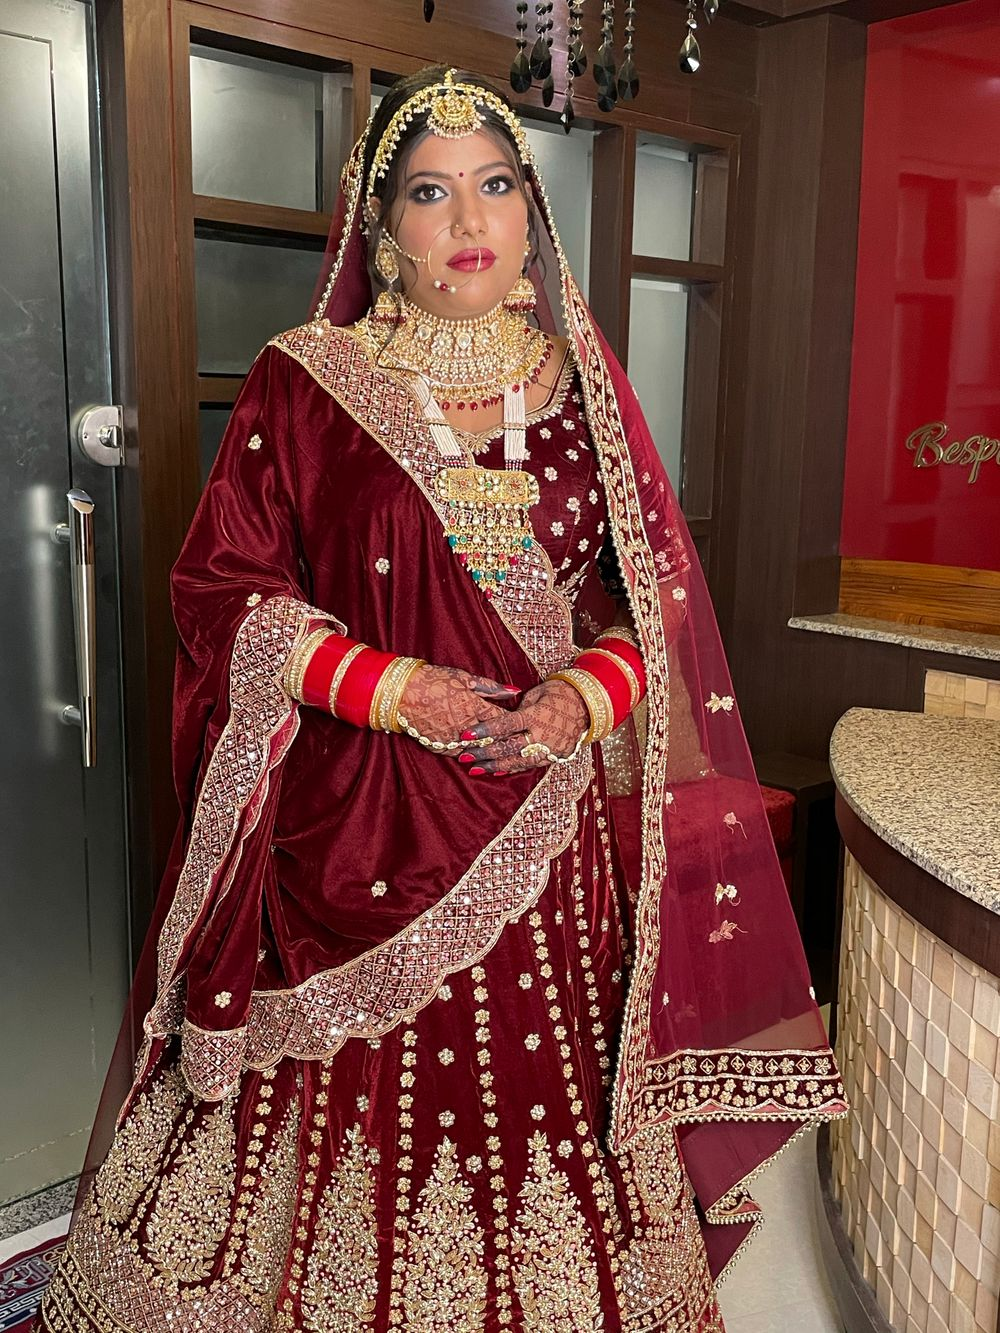 Photo From Komal - By Makeovers By Kamakshi Soni